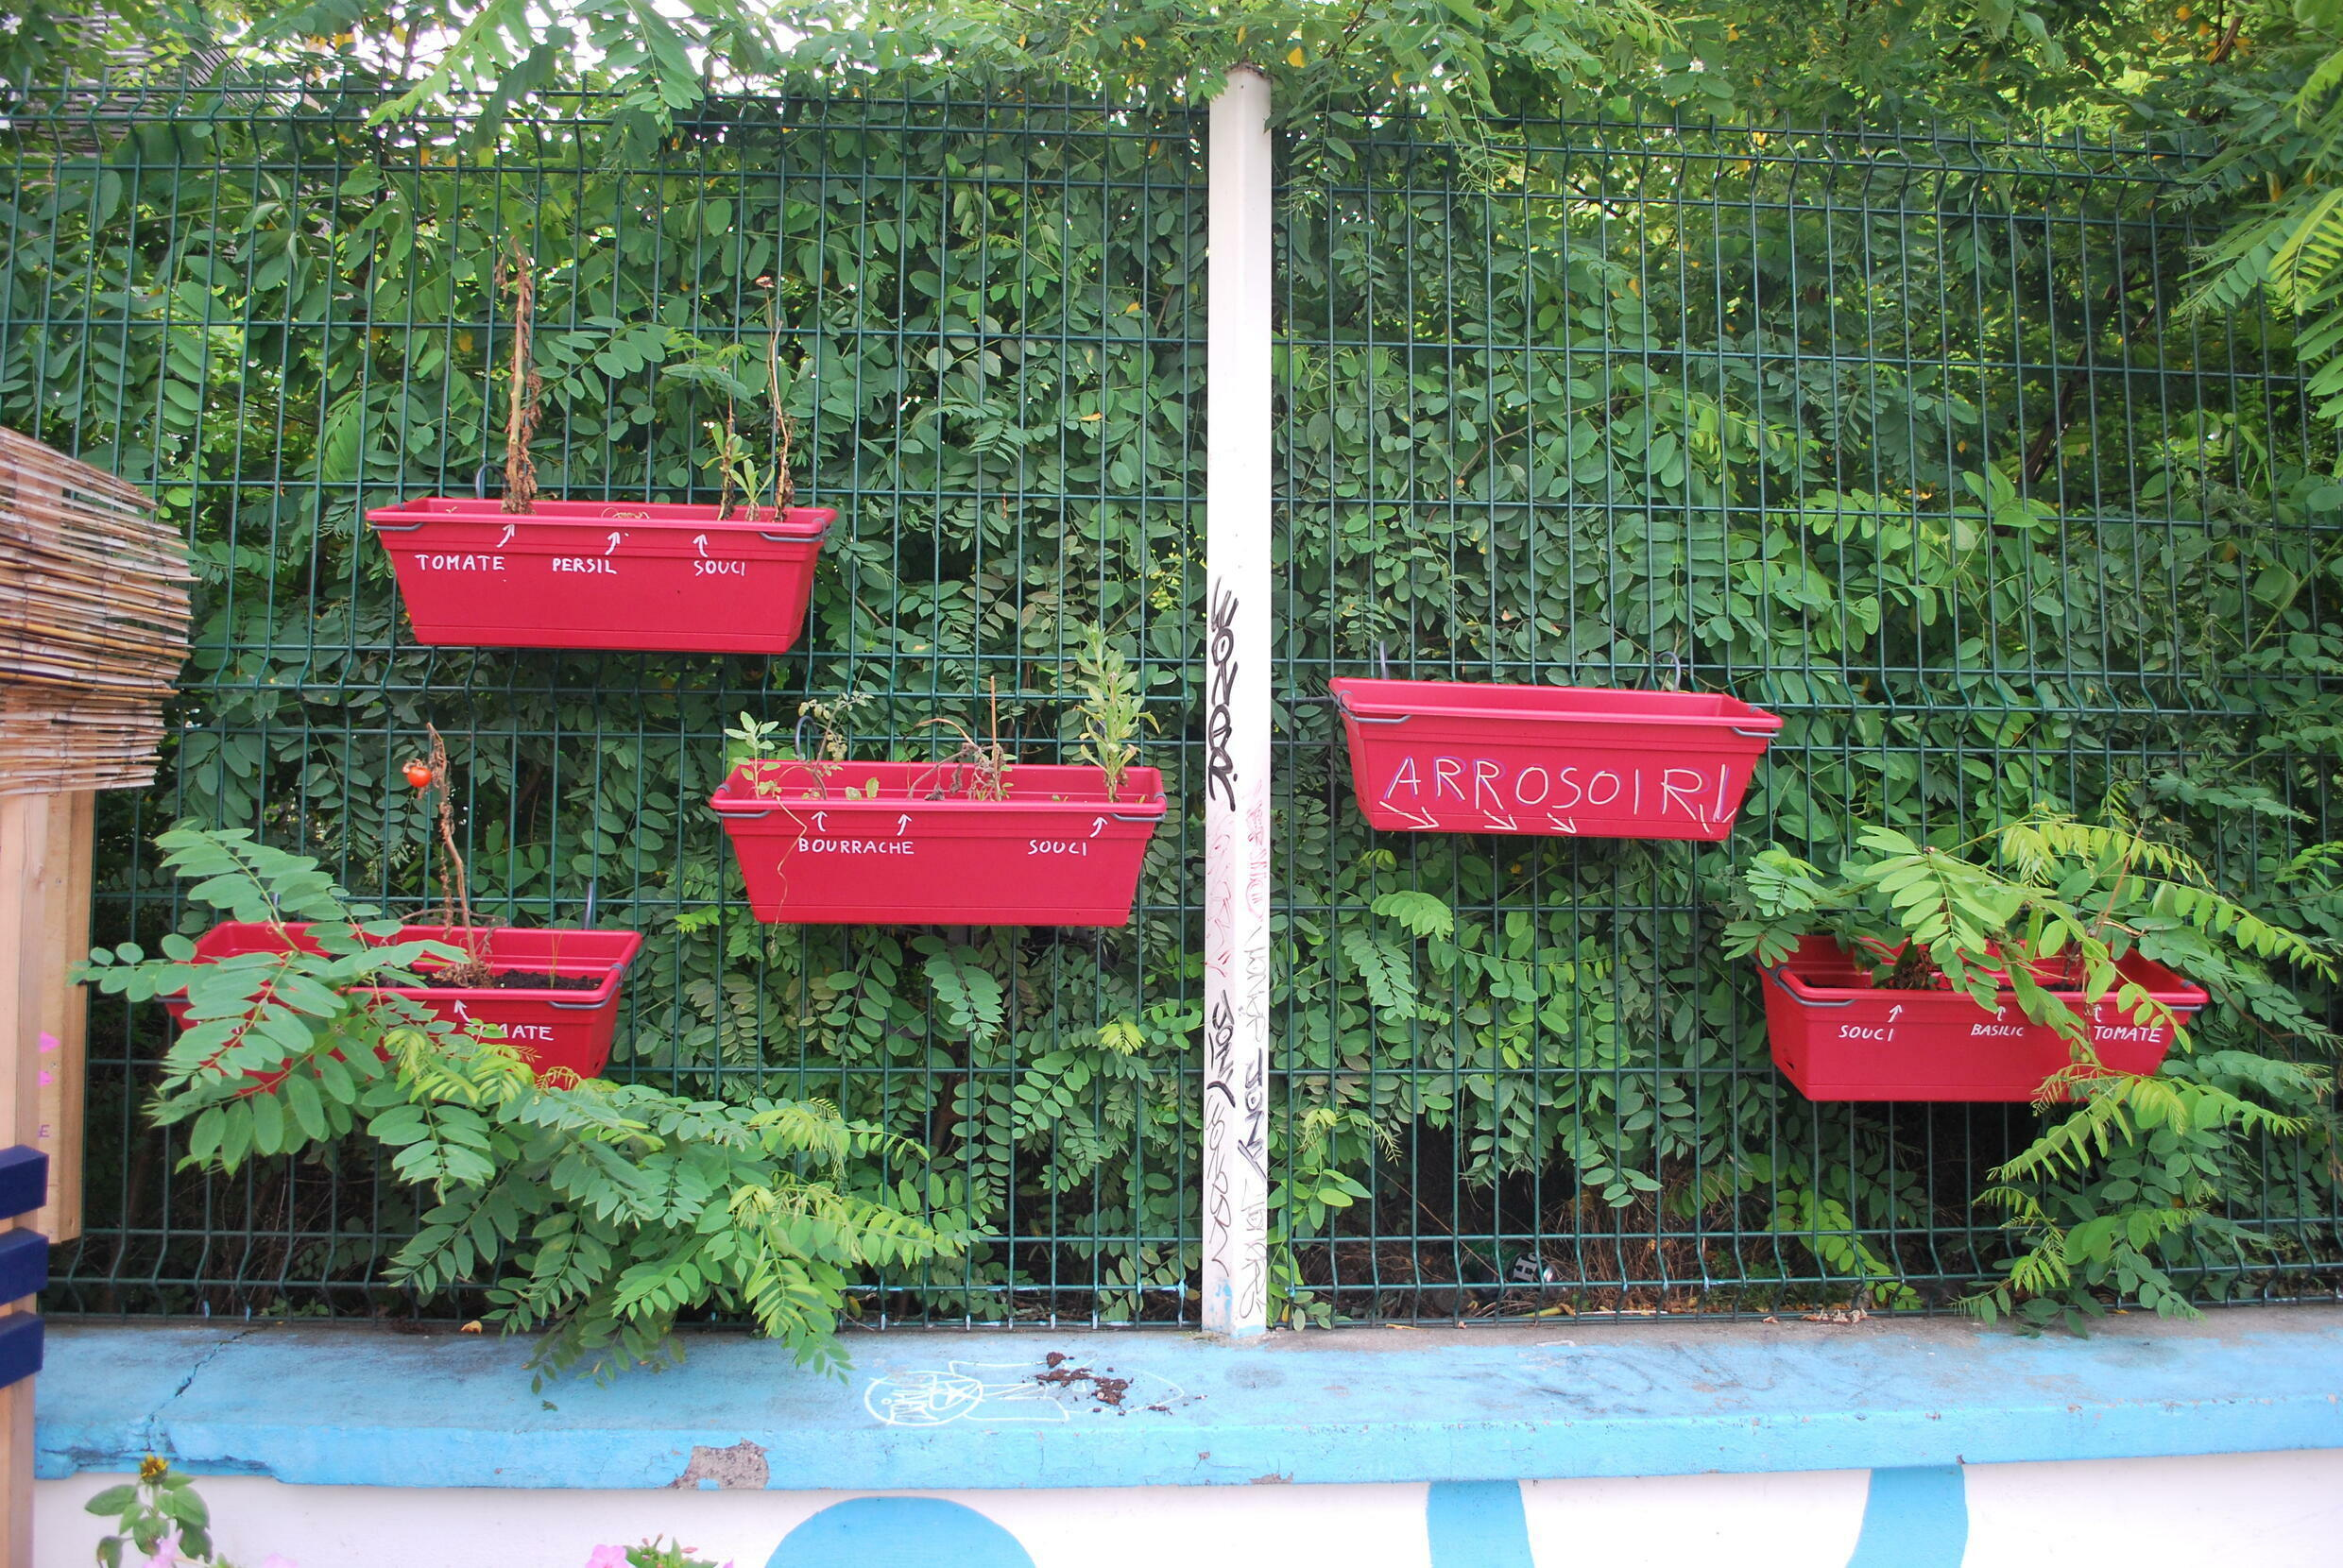 Rue Berthier, where the tunnel barrier was built, is home to a community garden.